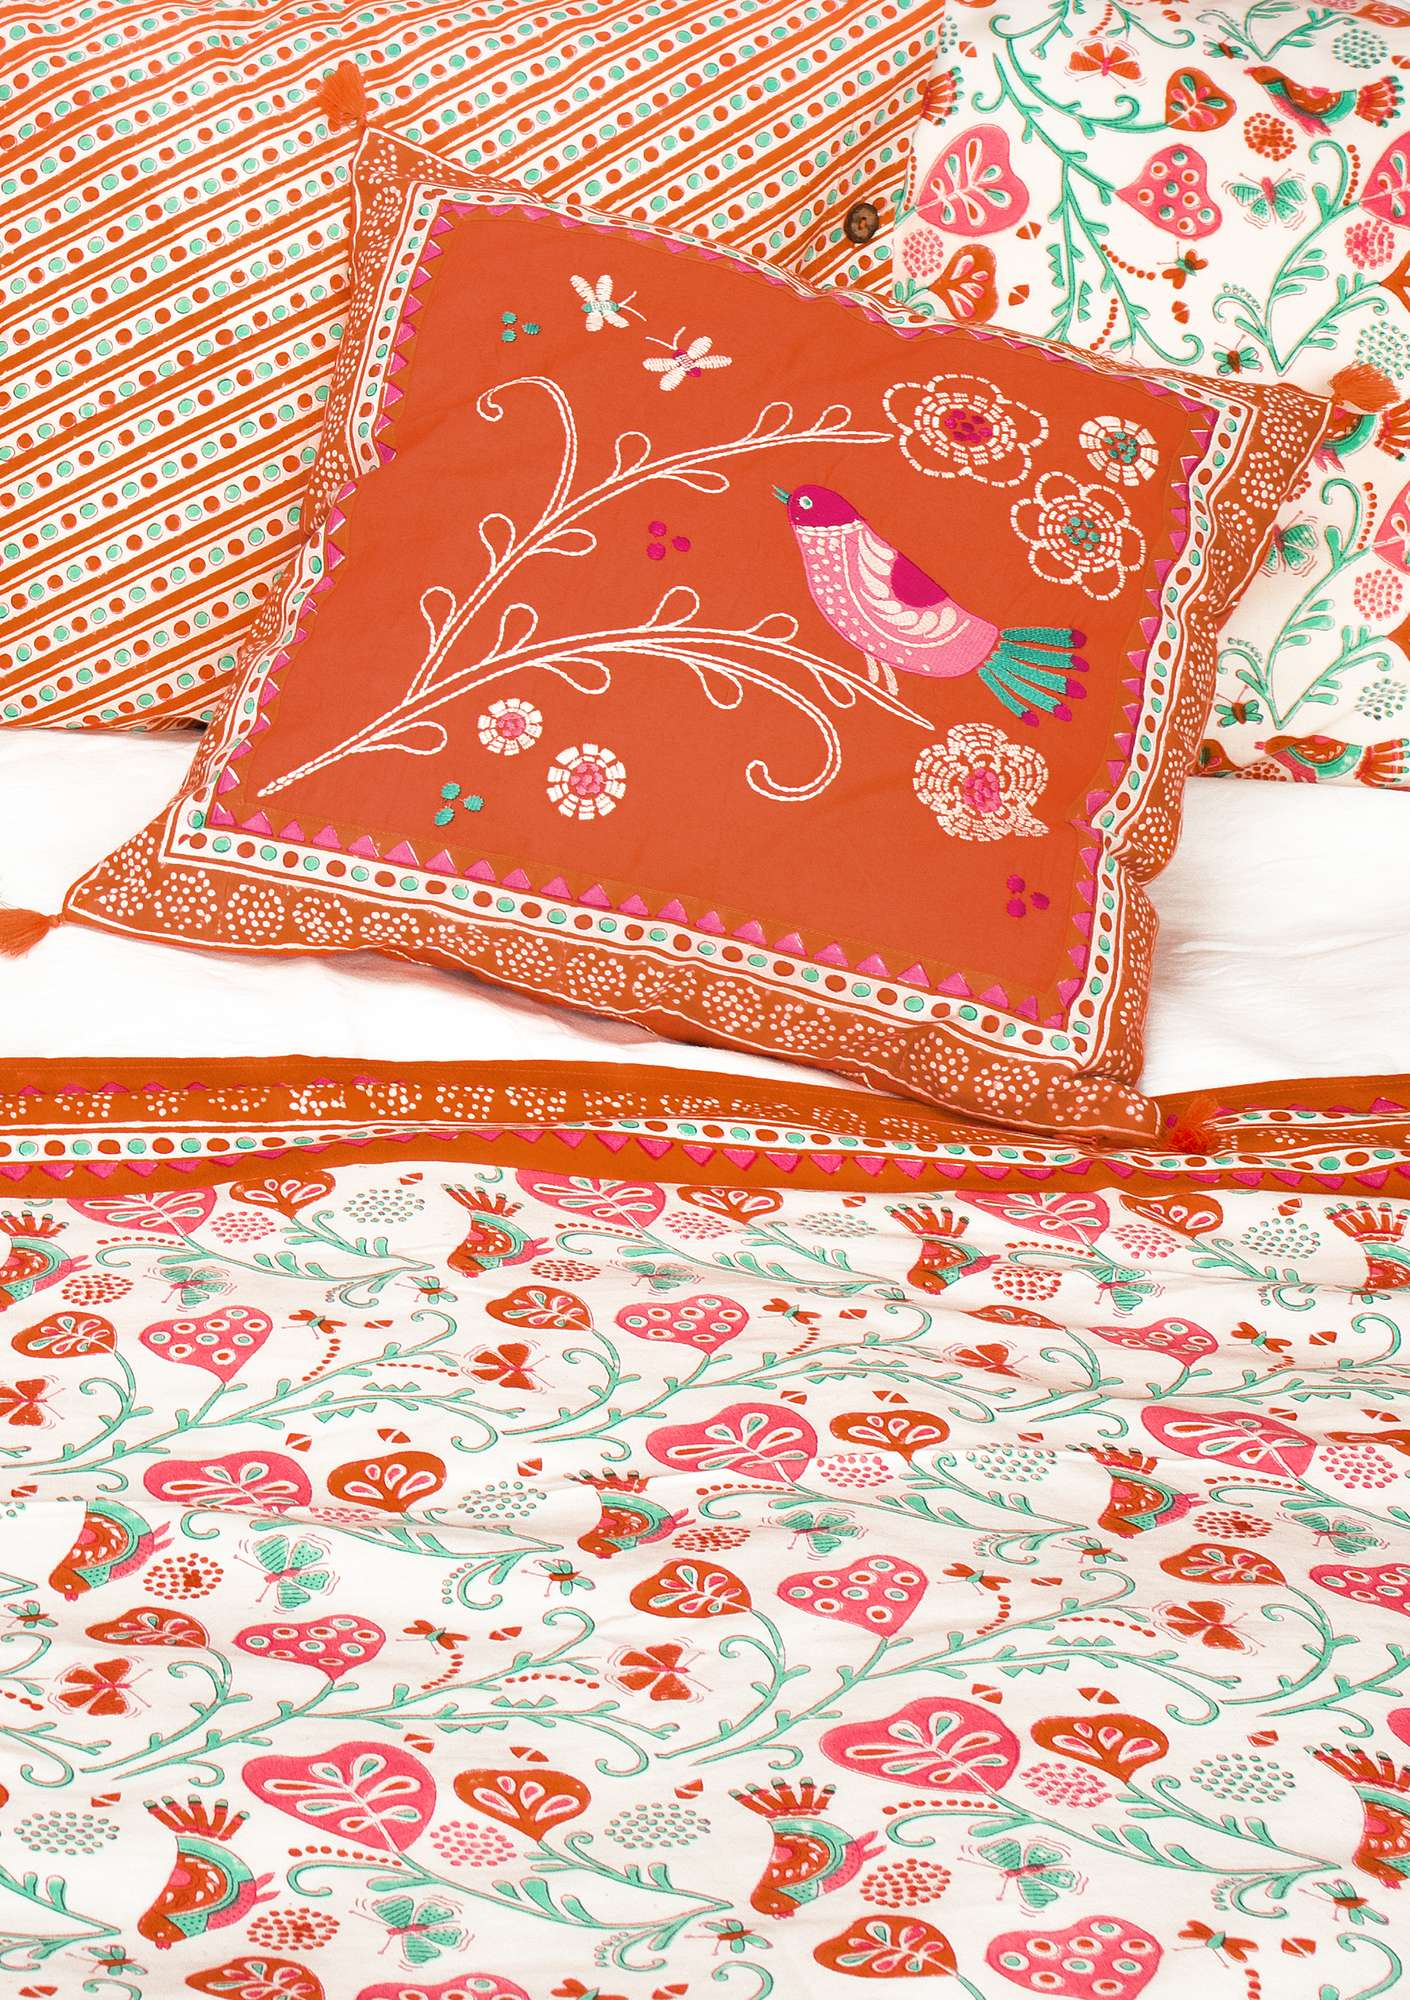 Kolibri cushion cover Orange